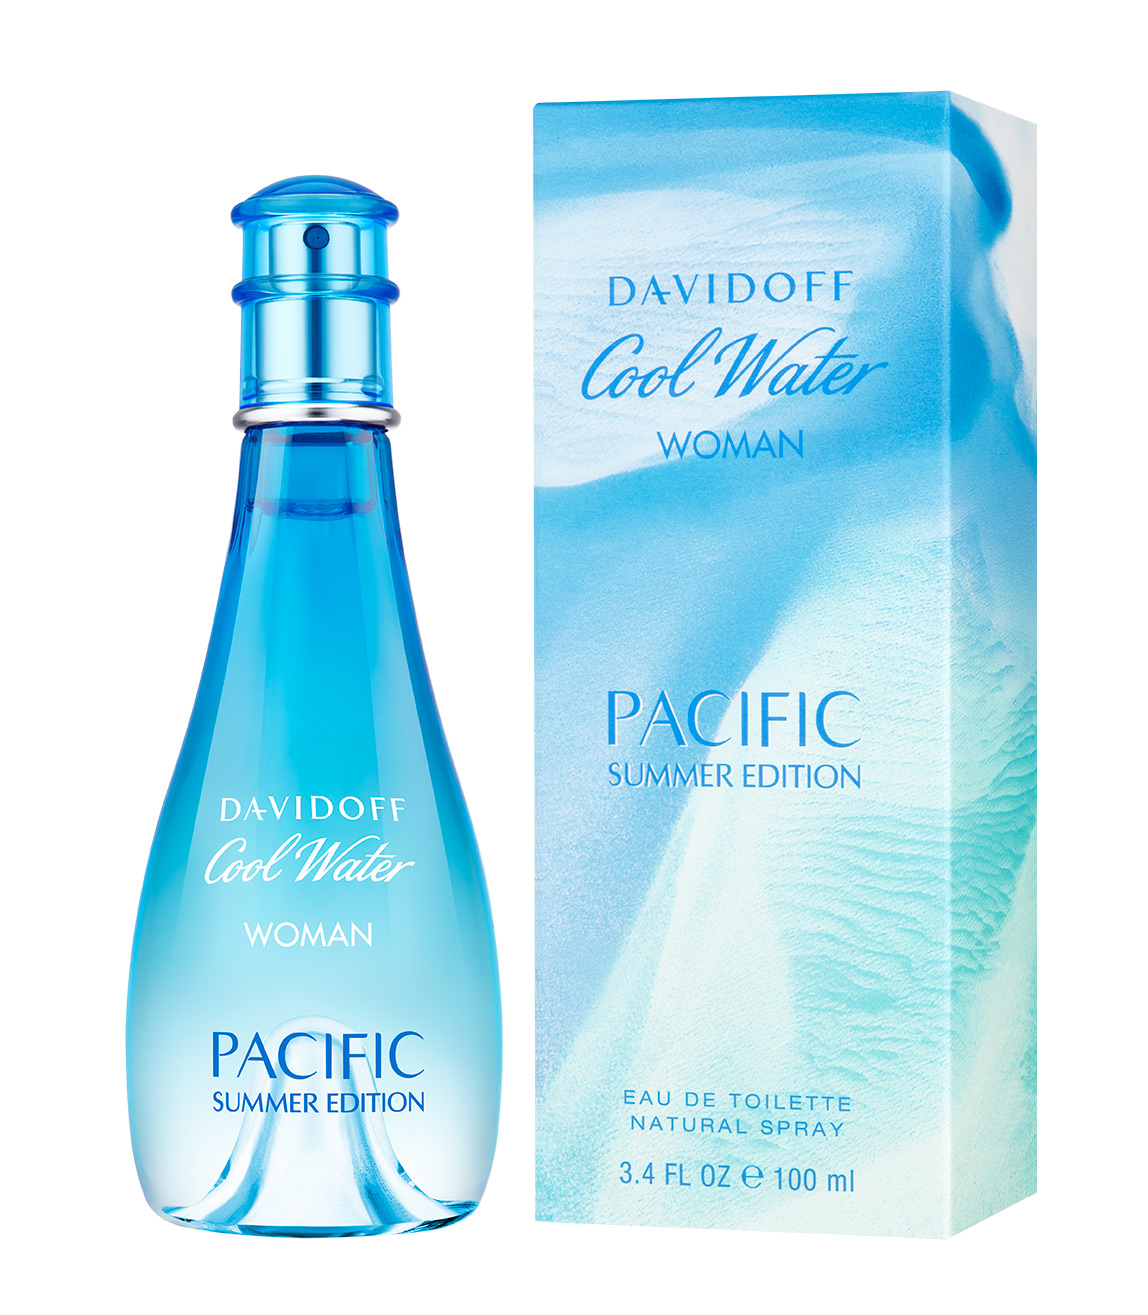 Cool Water Pacific Summer Edition For Women Davidoff Perfume A New